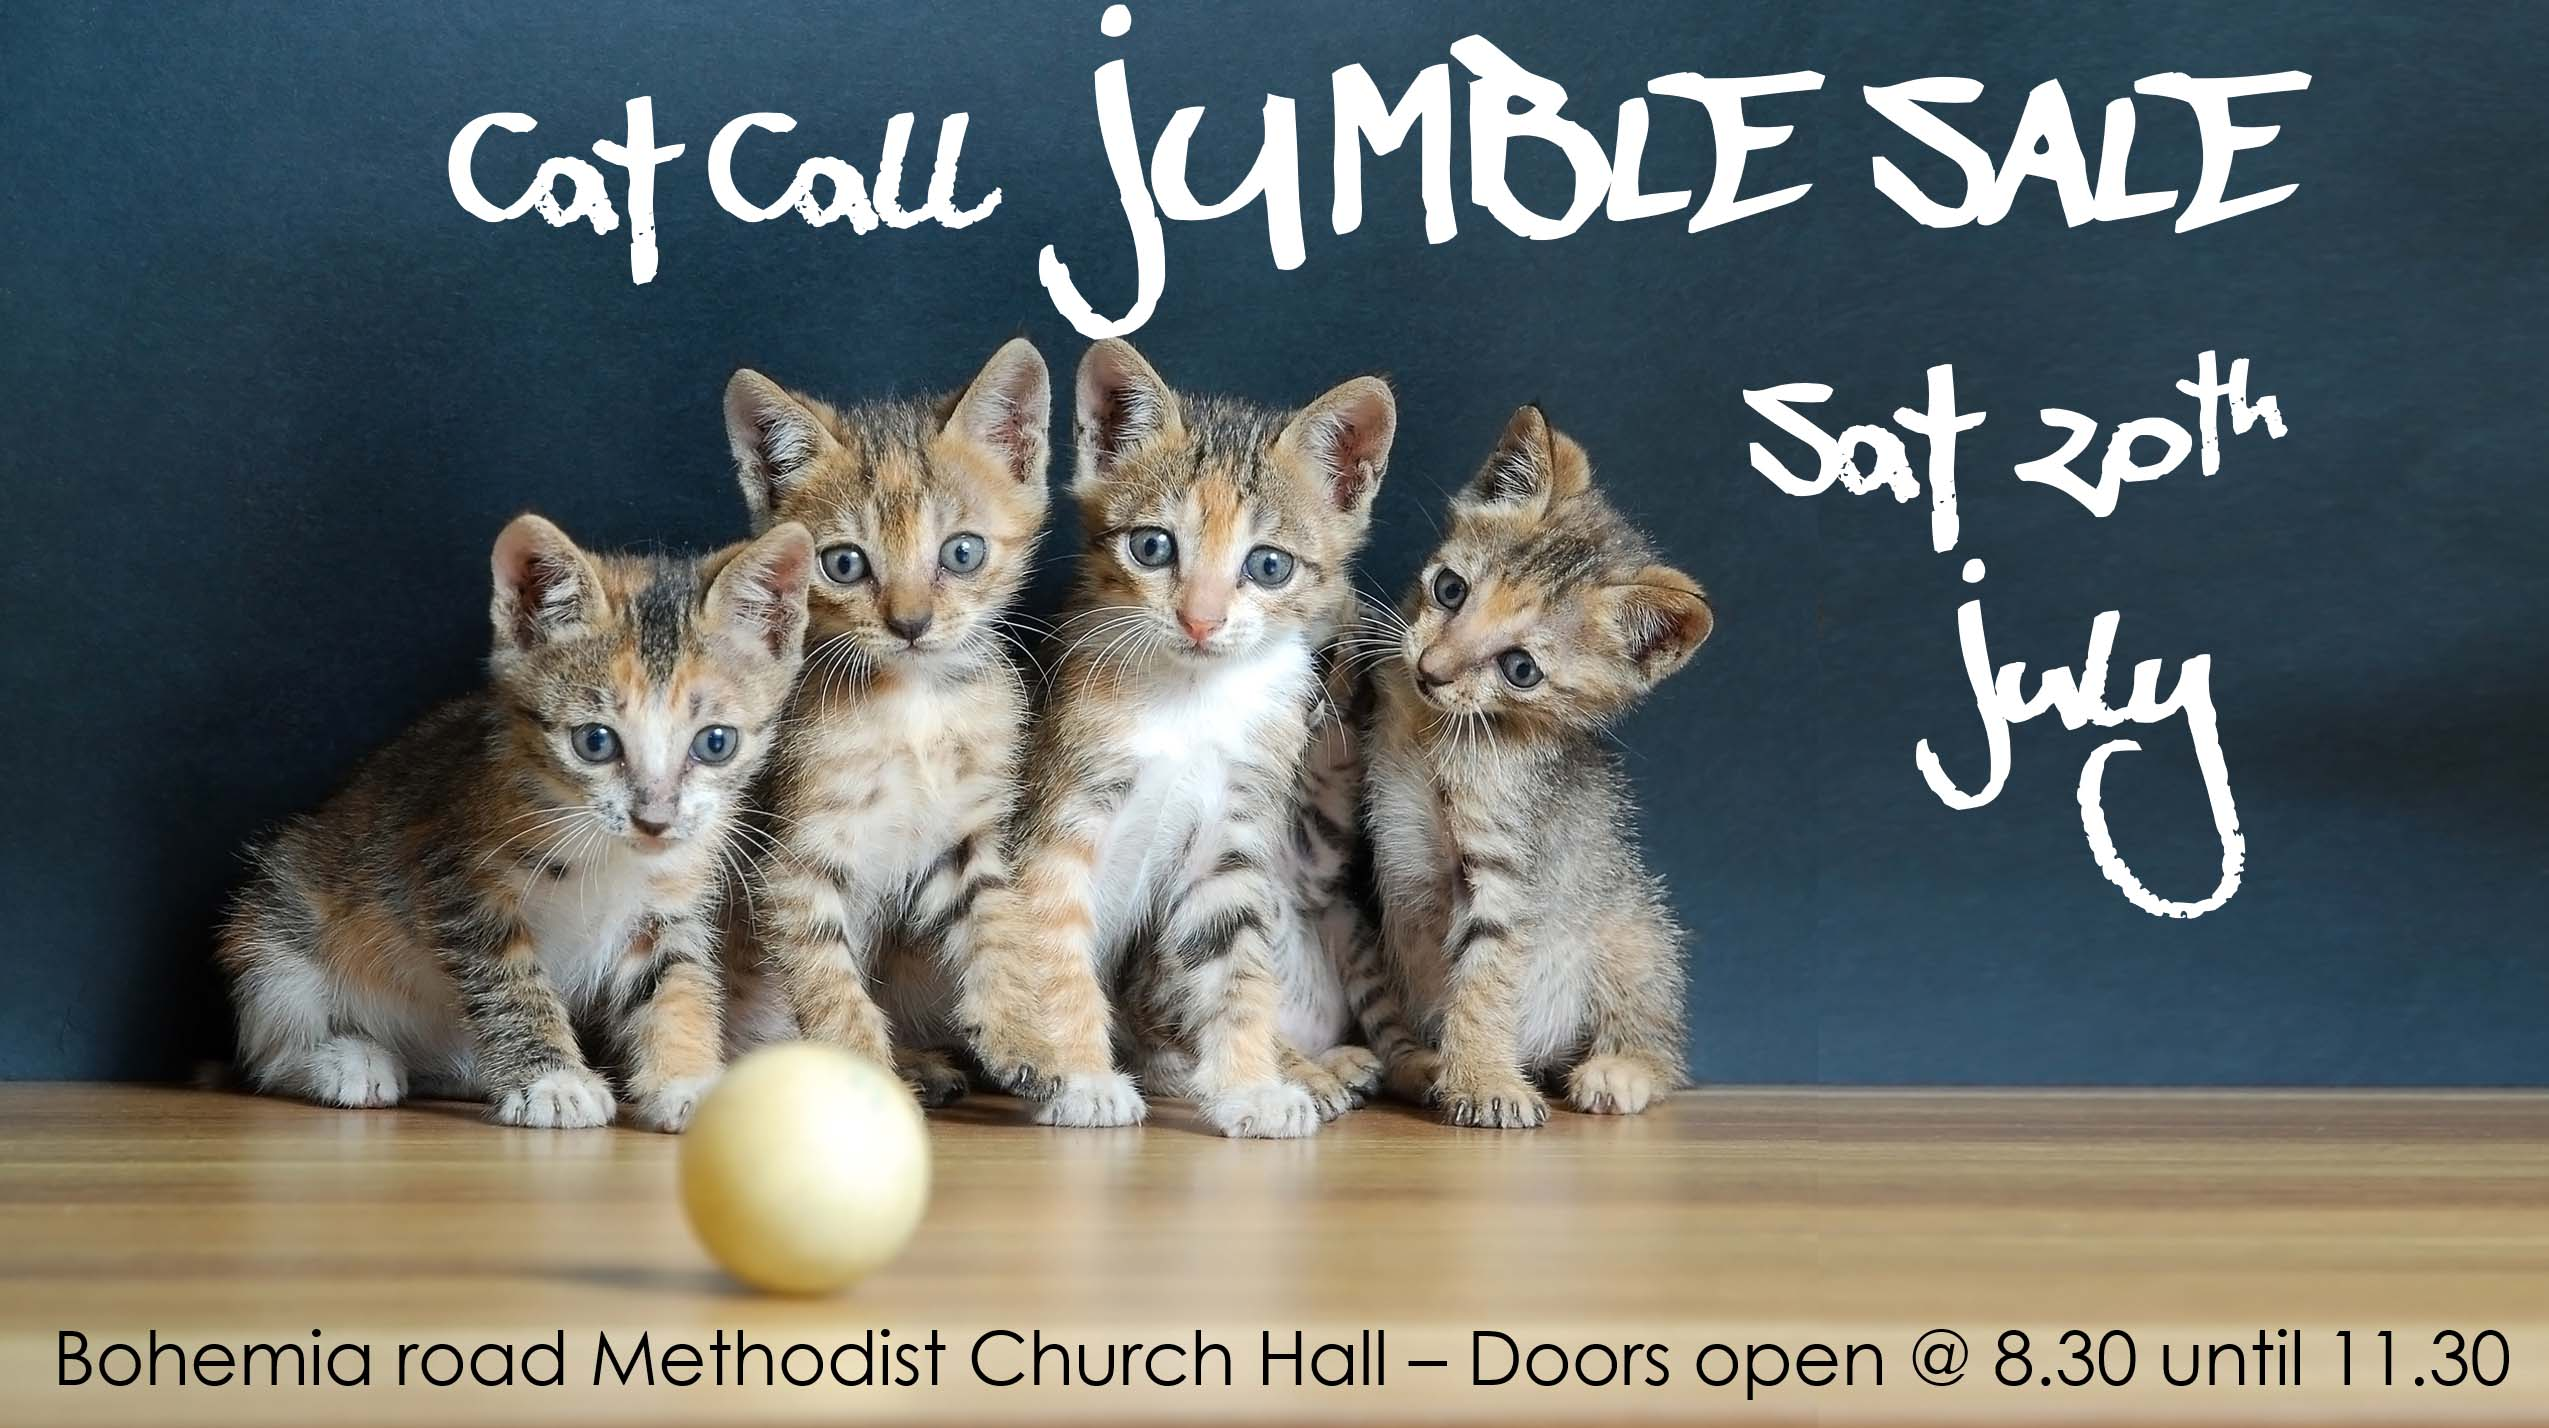 Cat Call Jumble Sale Sat 20th July